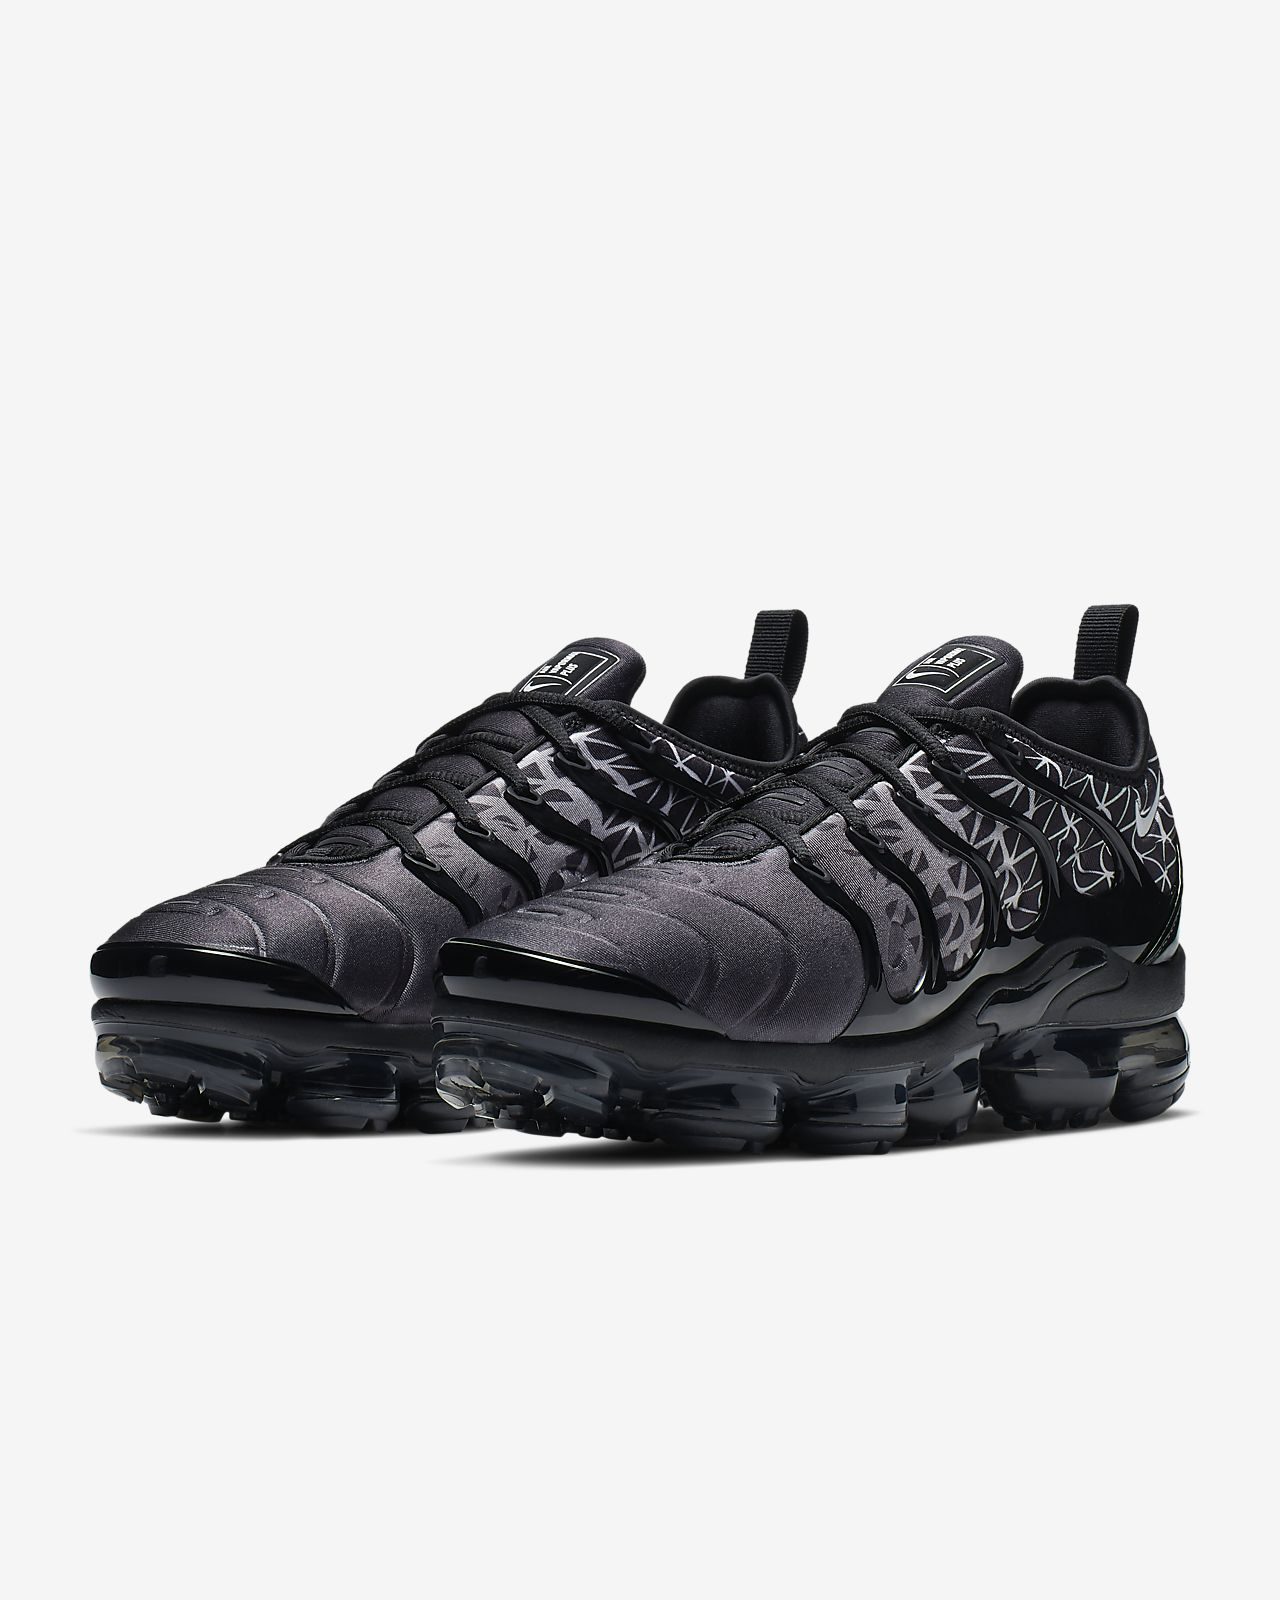 sneakers for cheap 0eba1 58baf ... Chaussure Nike Air VaporMax Plus pour Homme